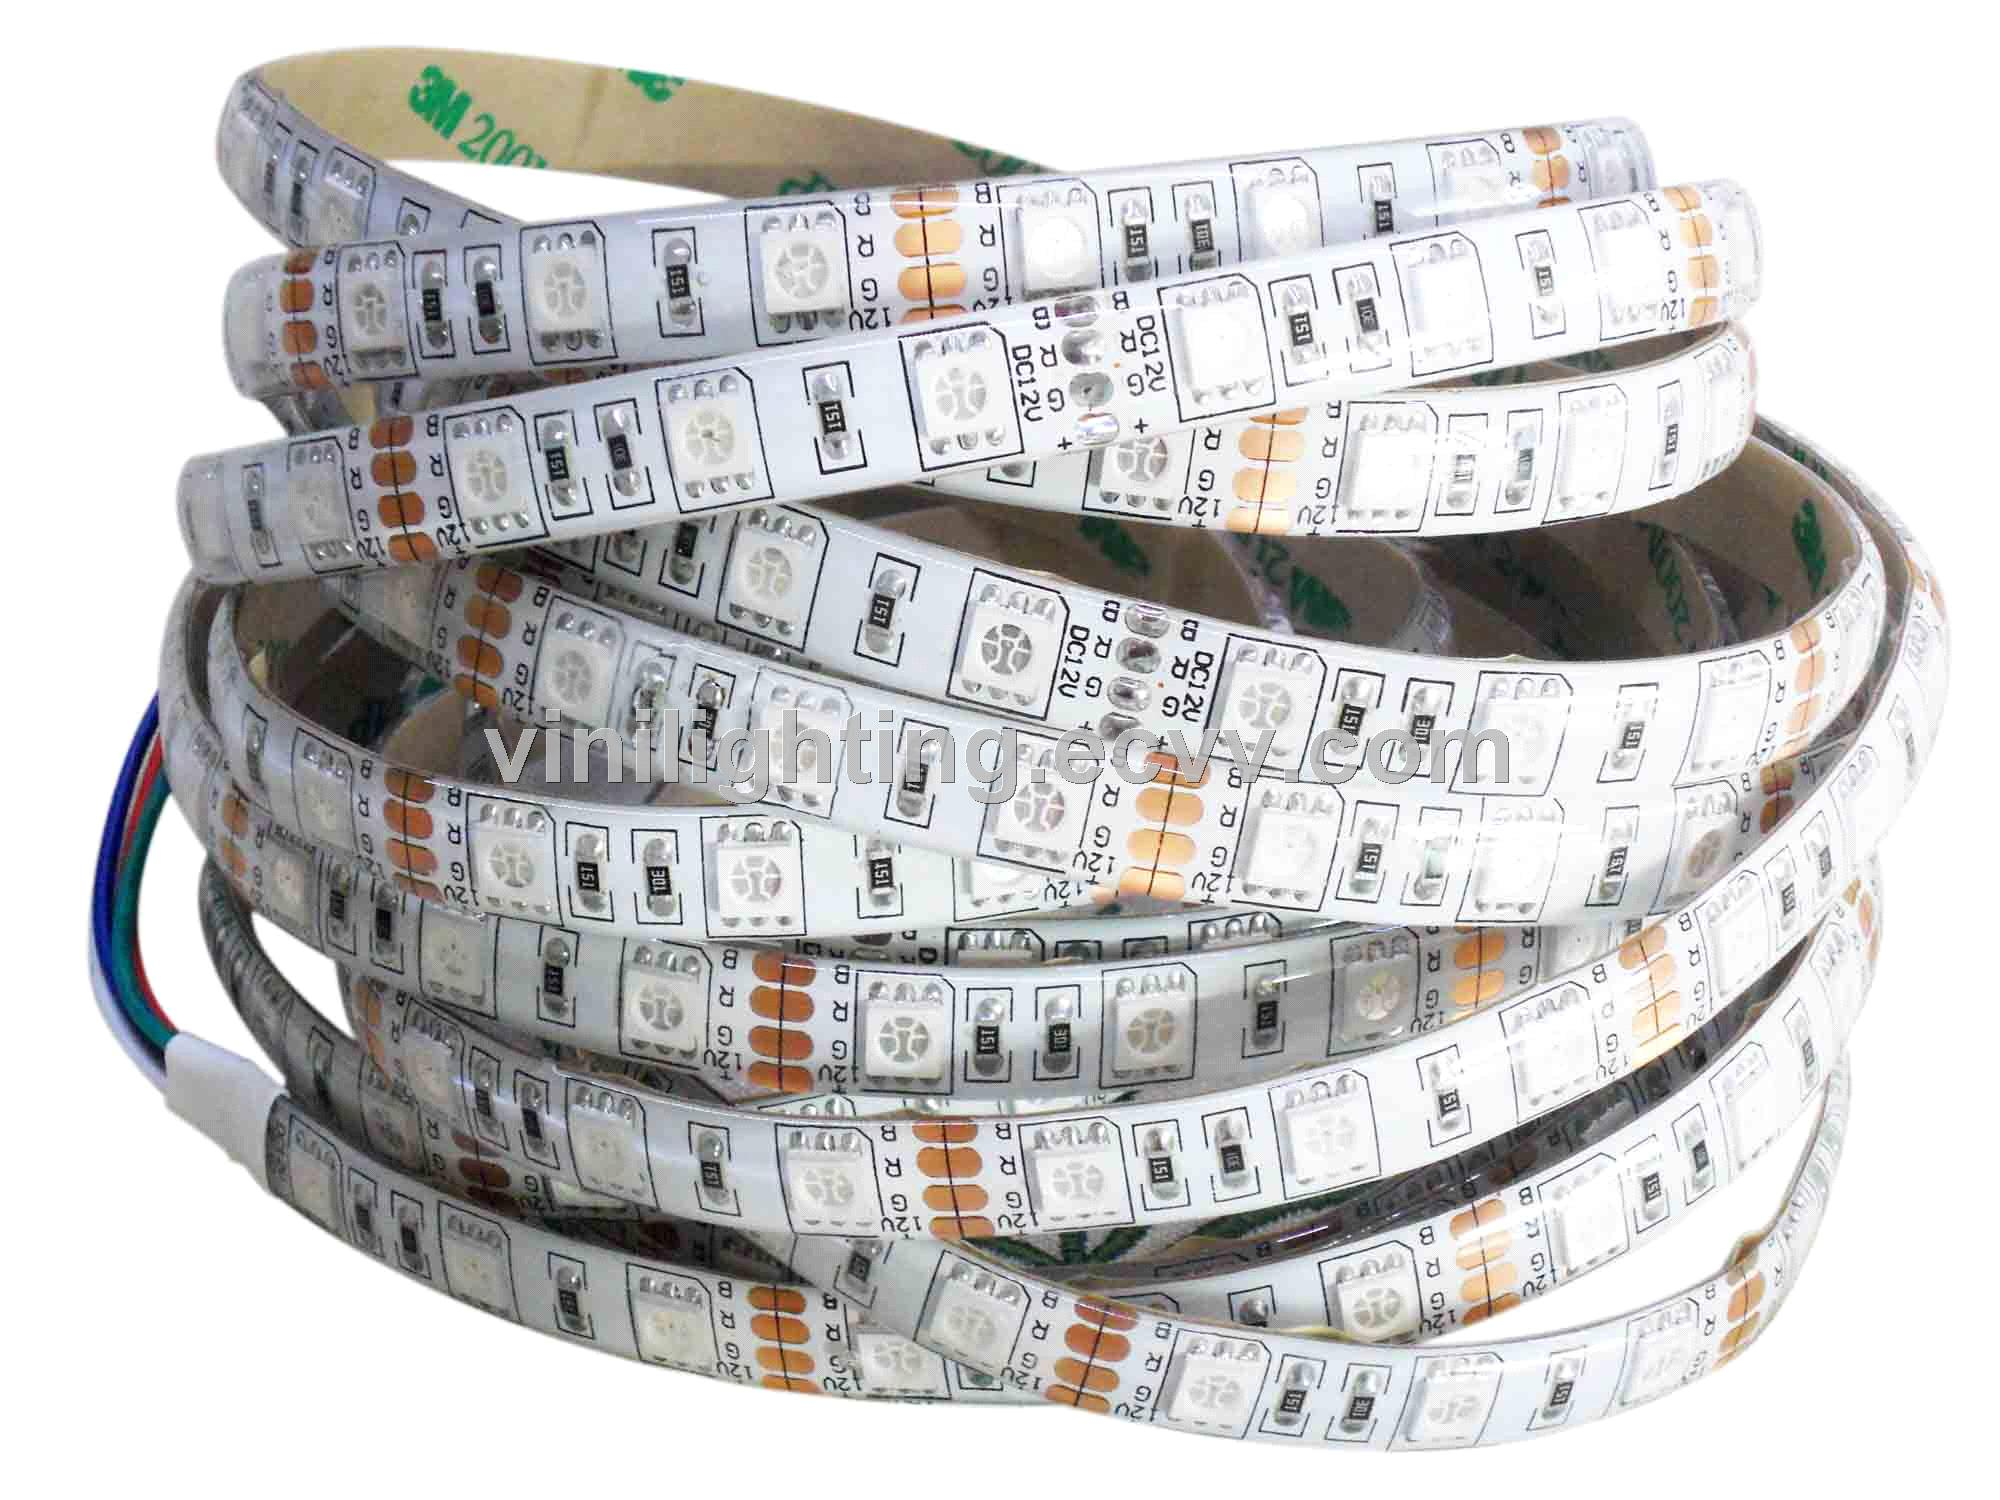 Dc24v rgb strip light 5050 60ledm purchasing souring agent ecvv dc24v rgb strip light 5050 60ledm aloadofball Choice Image